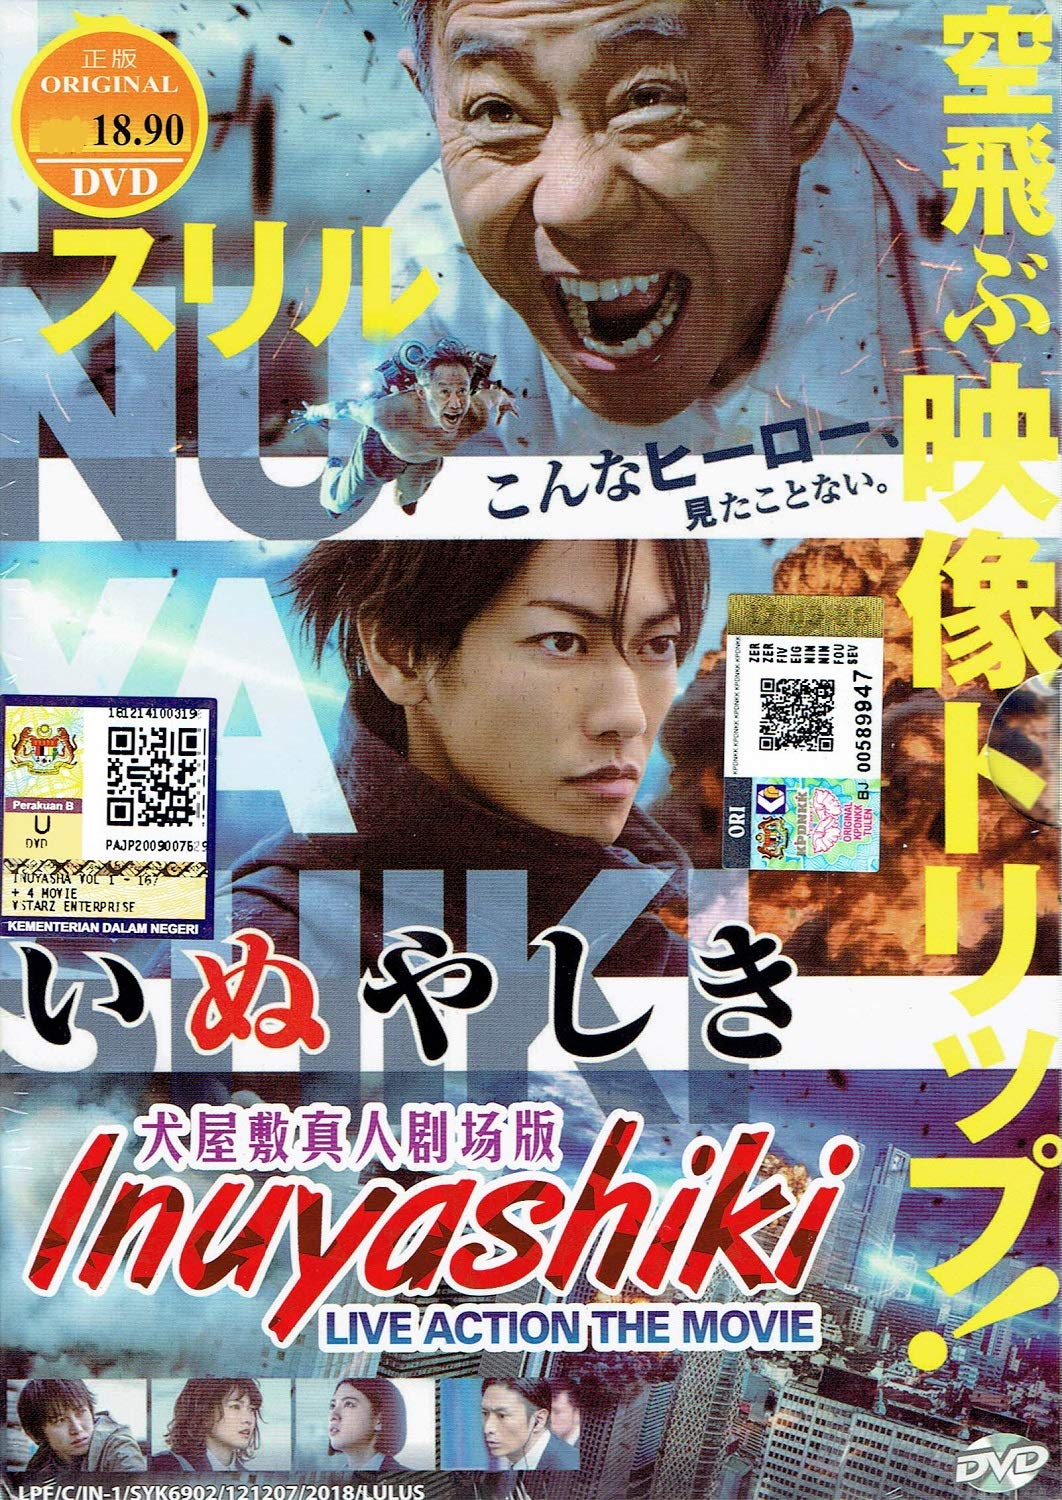 INUYASHIKI (THE MOVIE) LIVE ACTION